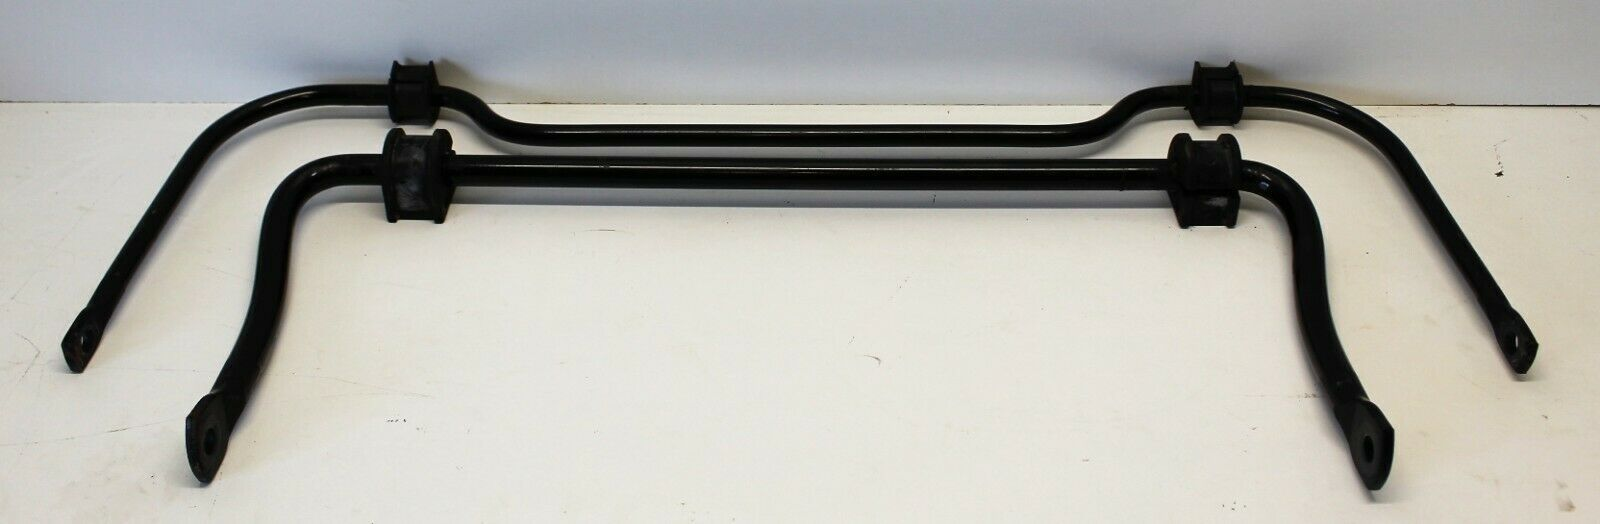 Genuine Land Rover Defender 90 anti roll bar front NTC6837's featured image